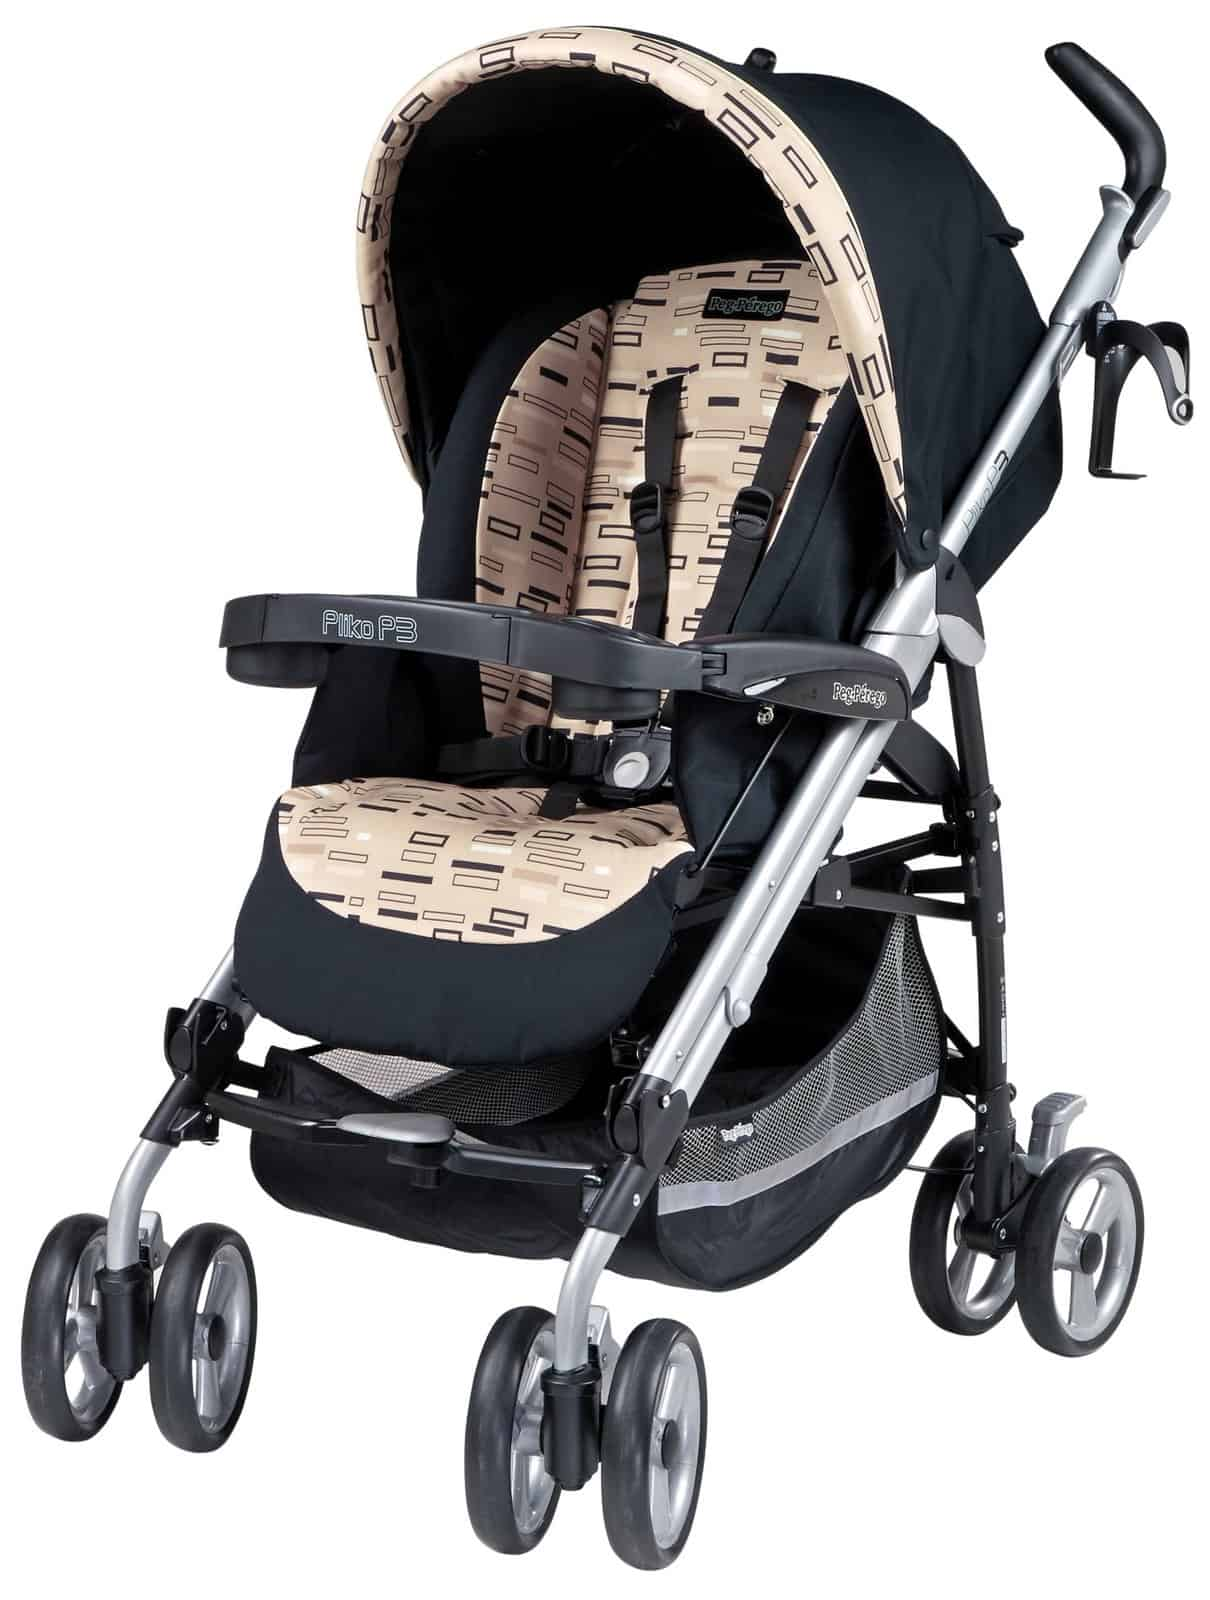 Peg Perego Stroller Primo Viaggio Best Travel Stroller Options Have Baby Will Travel